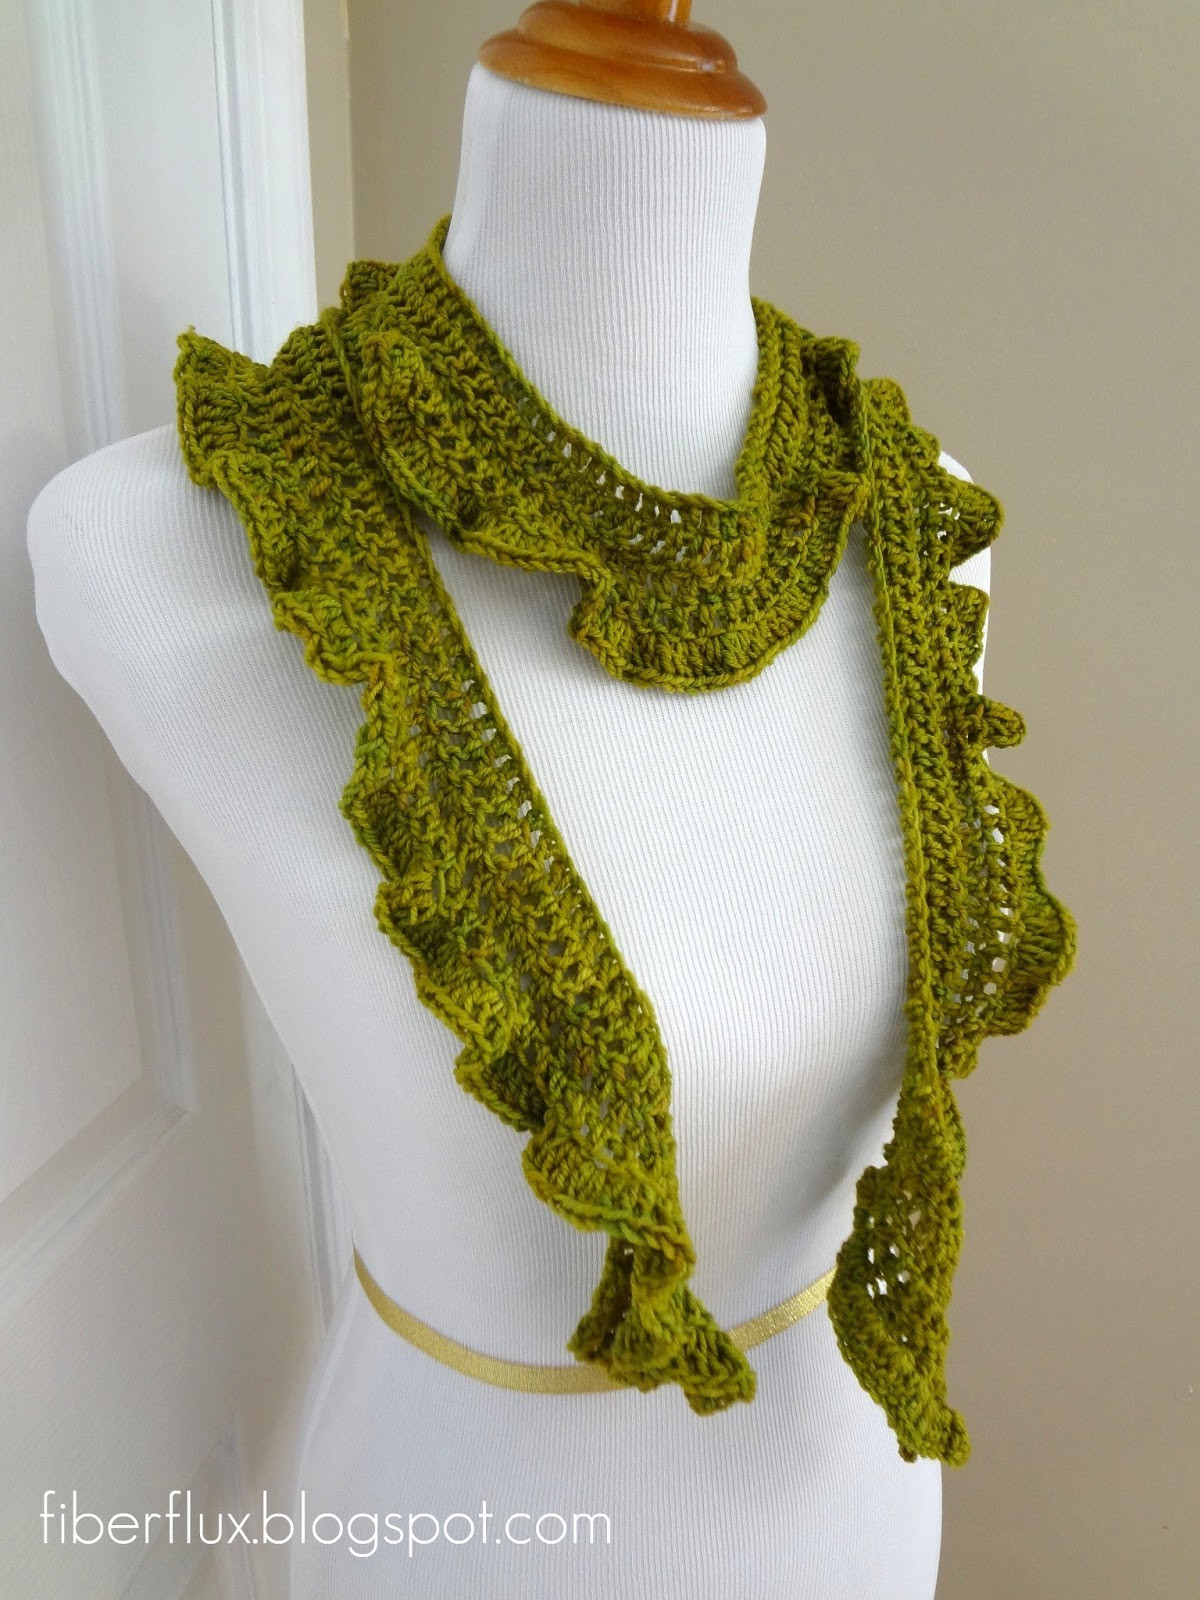 Crochet Scarf Patterns Unique Fiber Flux Free Crochet Pattern Arugula Scarf Of Charming 49 Models Crochet Scarf Patterns